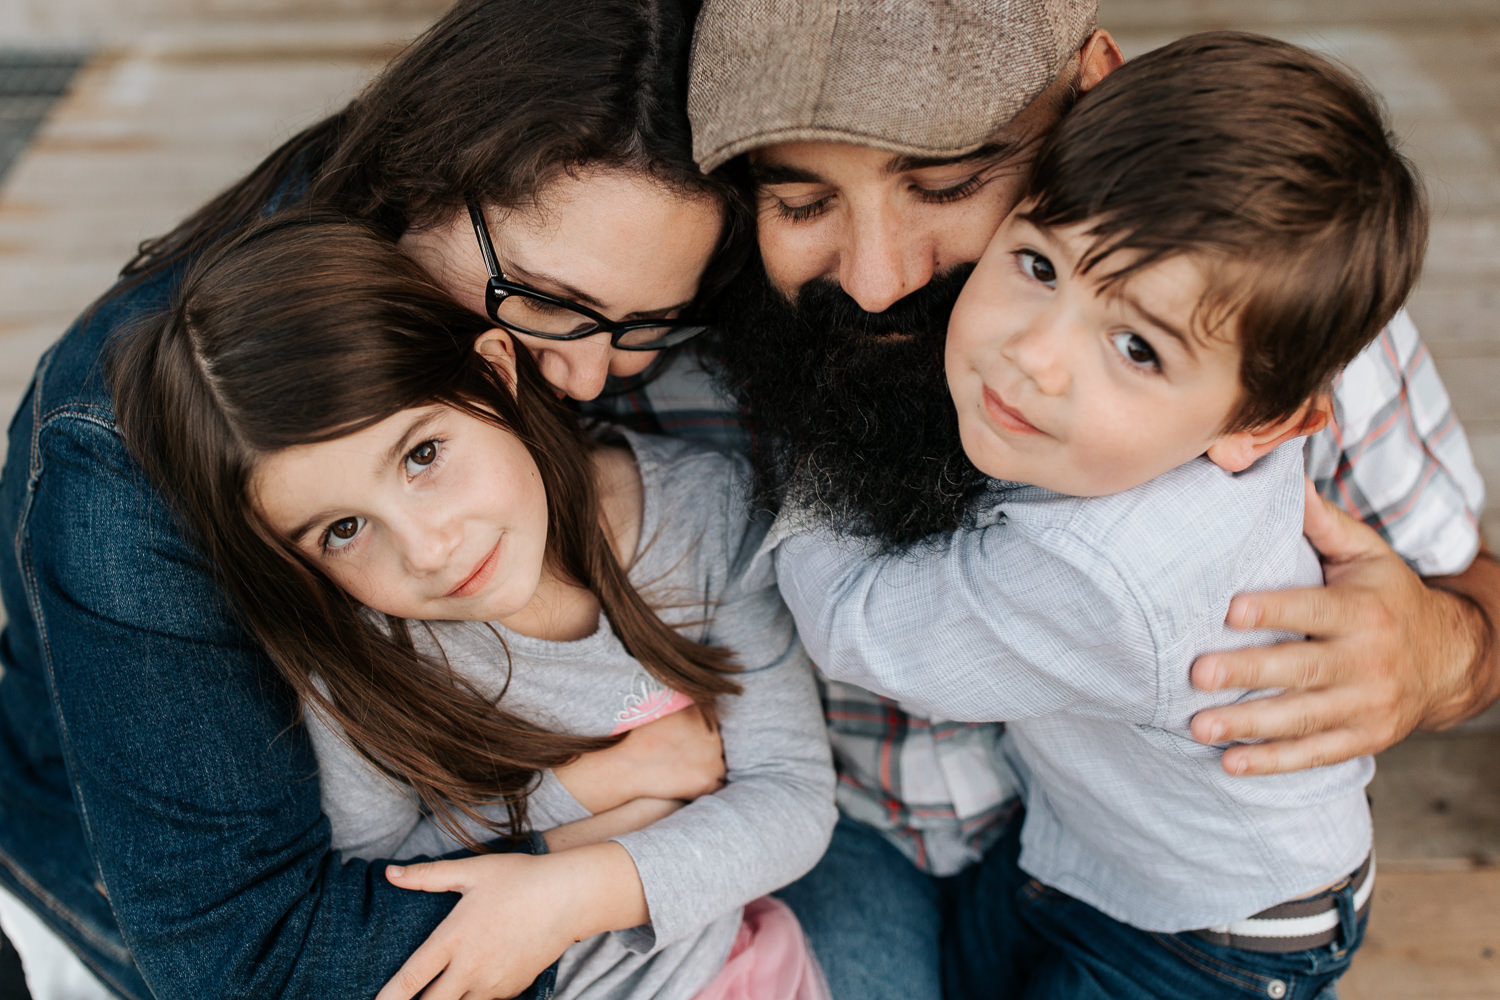 family of foursitting on porch, 4 year boy sitting in dad's lap and 5 year old girl in mom's, snuggled up together in an family hug, son and daughter looking up at camera - Newmarket Lifestyle Photos